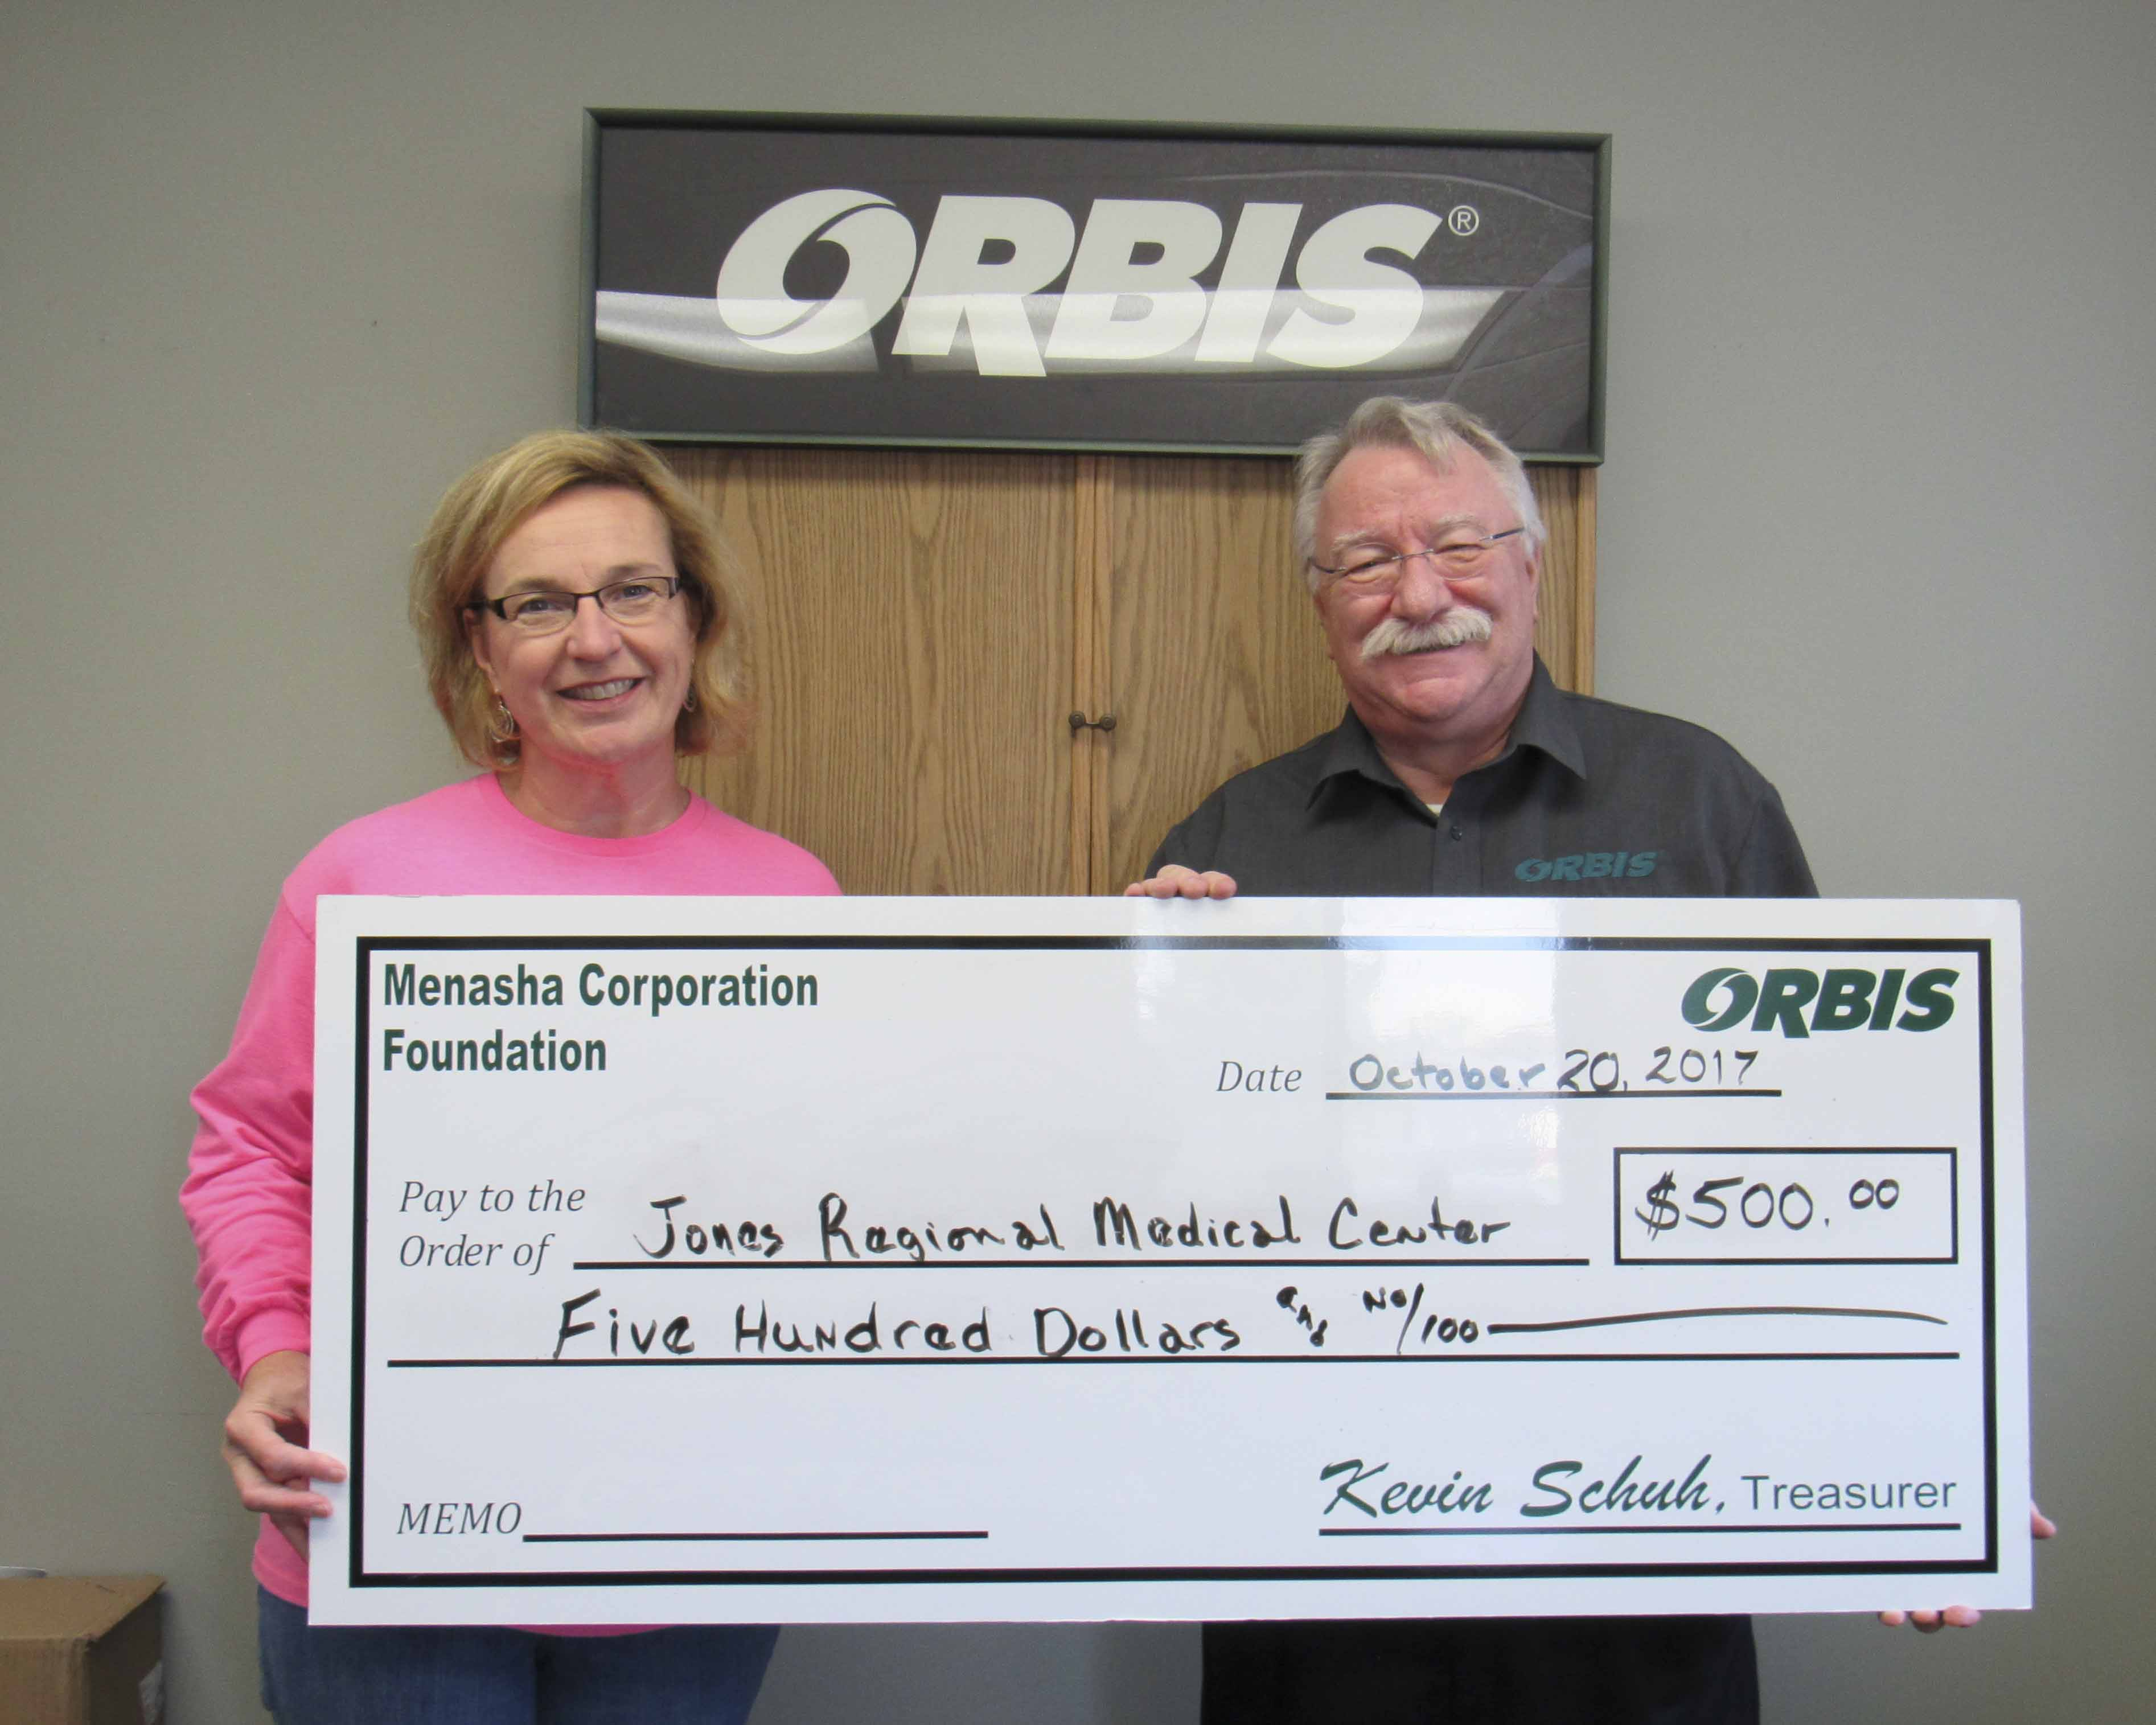 Sheila Tjaden with UnityPoint Health–Jones Regional Medical Center accepts a donation from Richard Talcott with Orbis. (Photo by Kim Brooks)